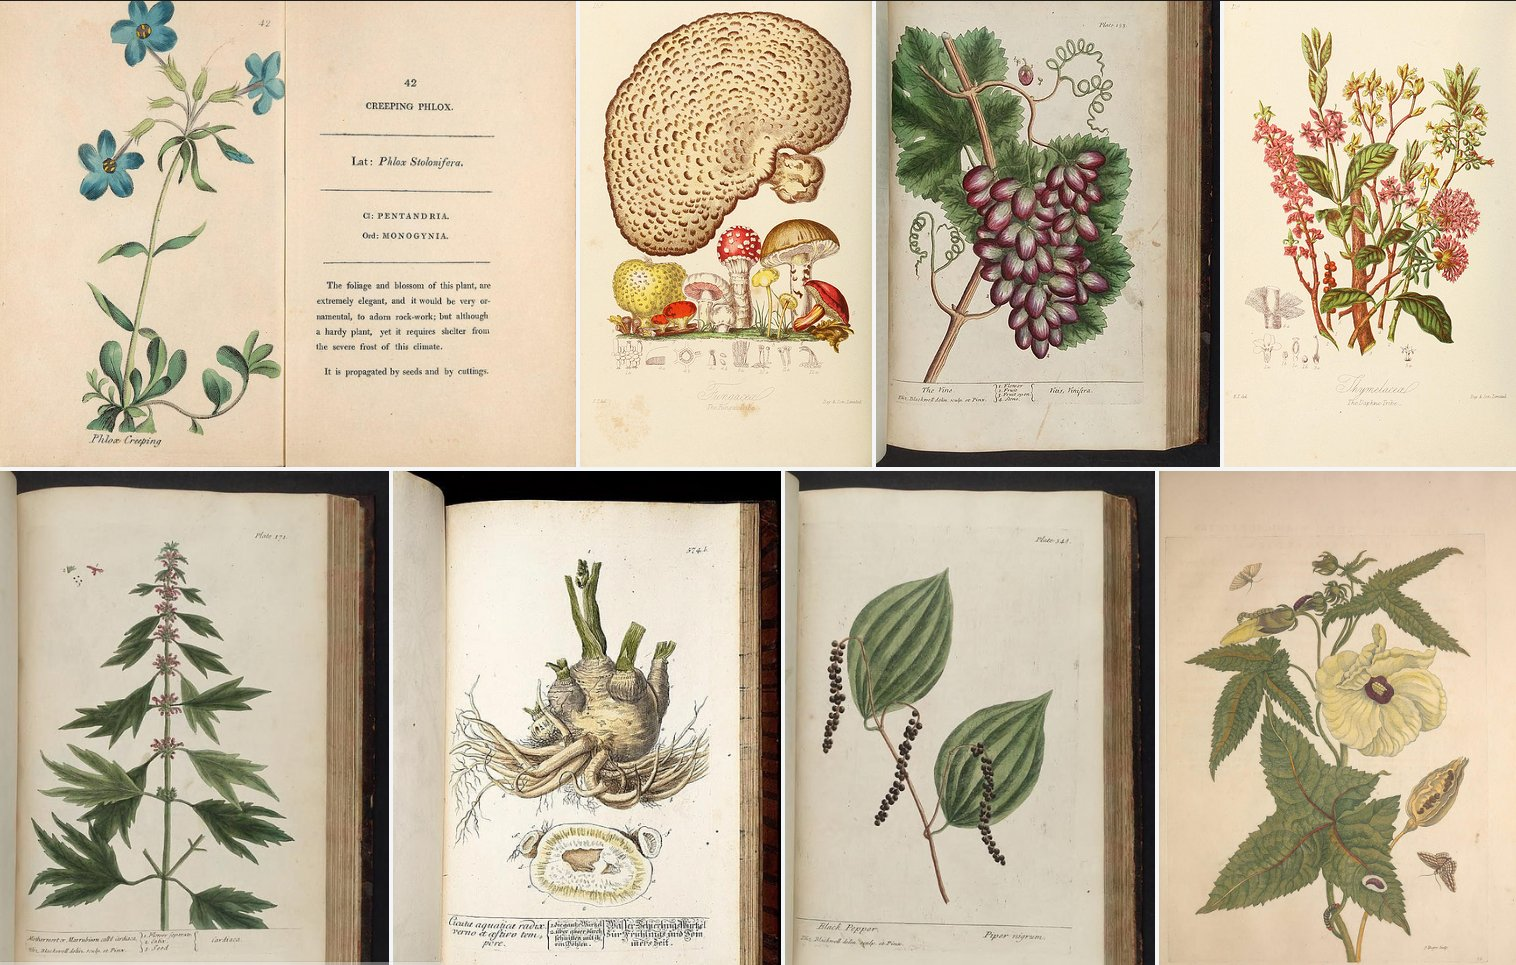 🌿 @BioDivLibrary features scientists who were artistically savvy for a #5WomenArtists & #5WomenScientists crossover! https://t.co/gryEa3BHZK https://t.co/841mWpuqHx